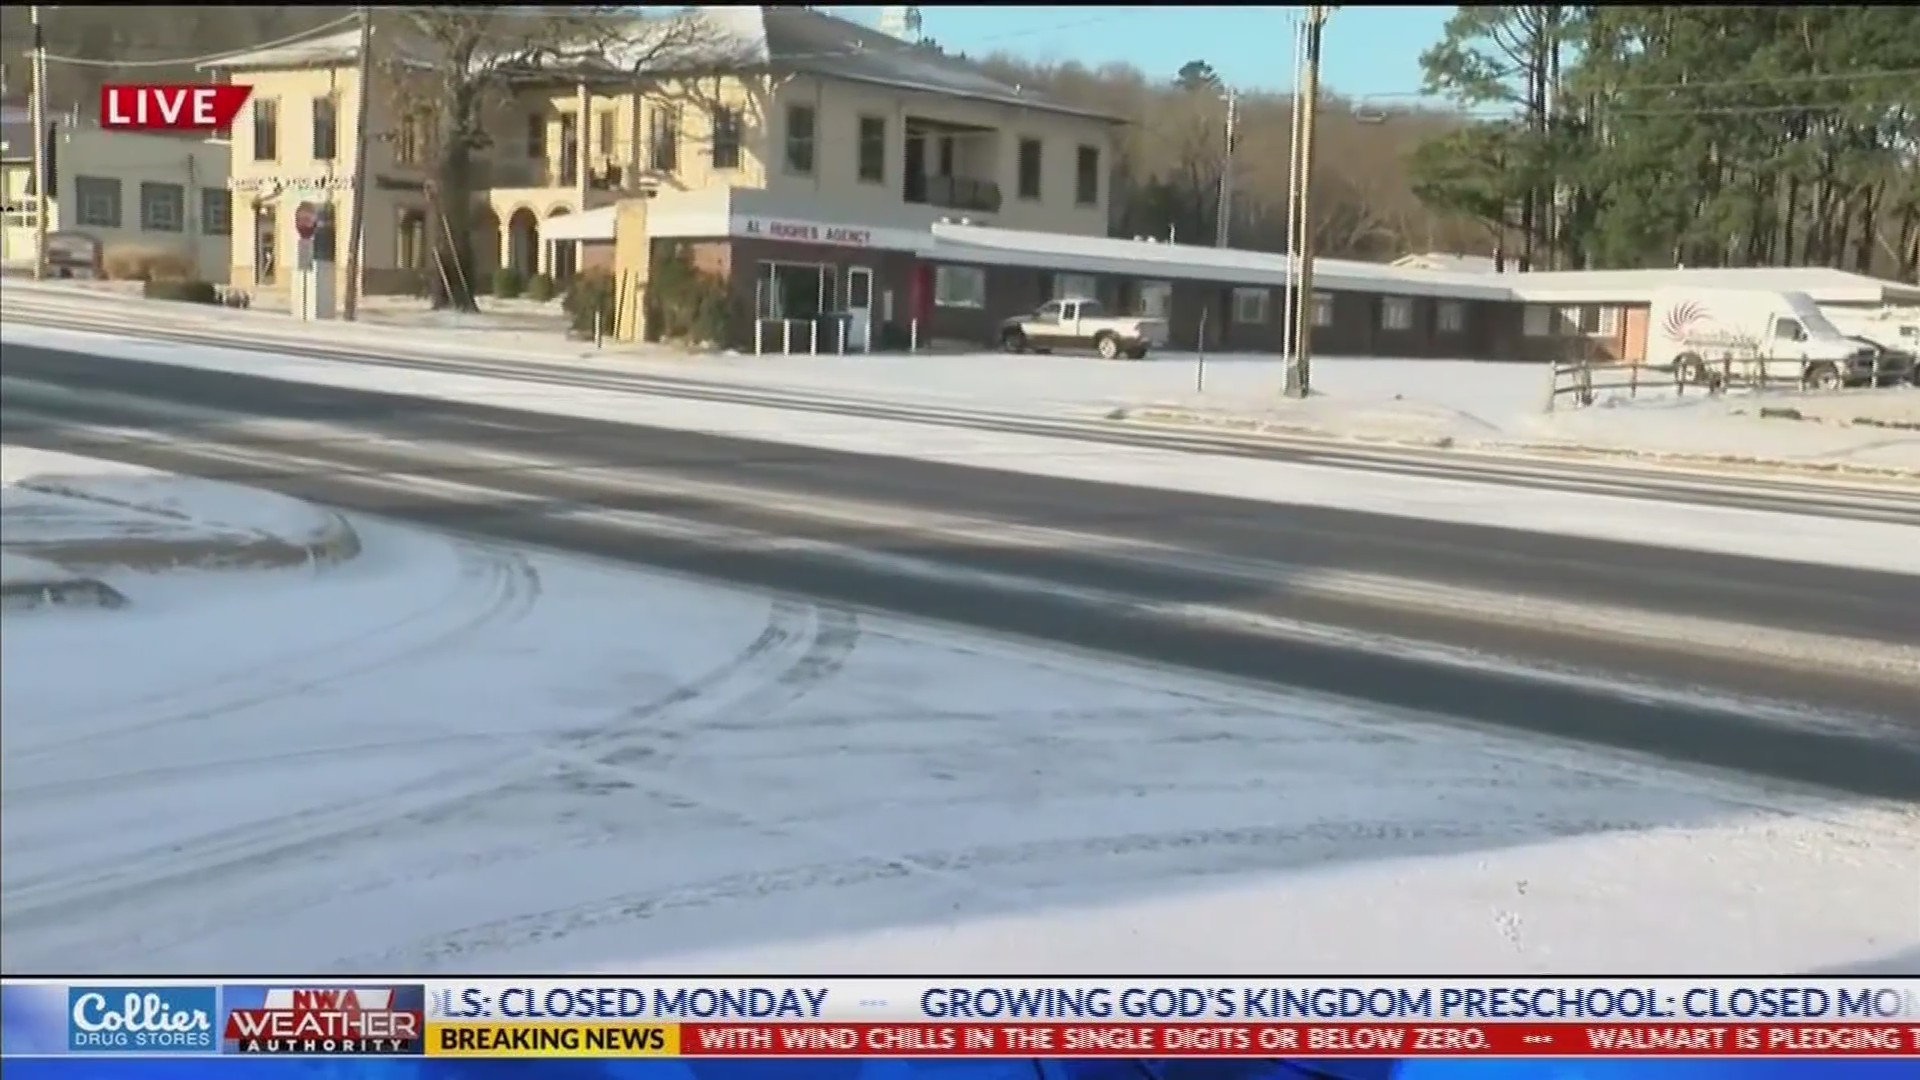 Update on Road Conditions in NWA, Wind Chill Advisory in Effect